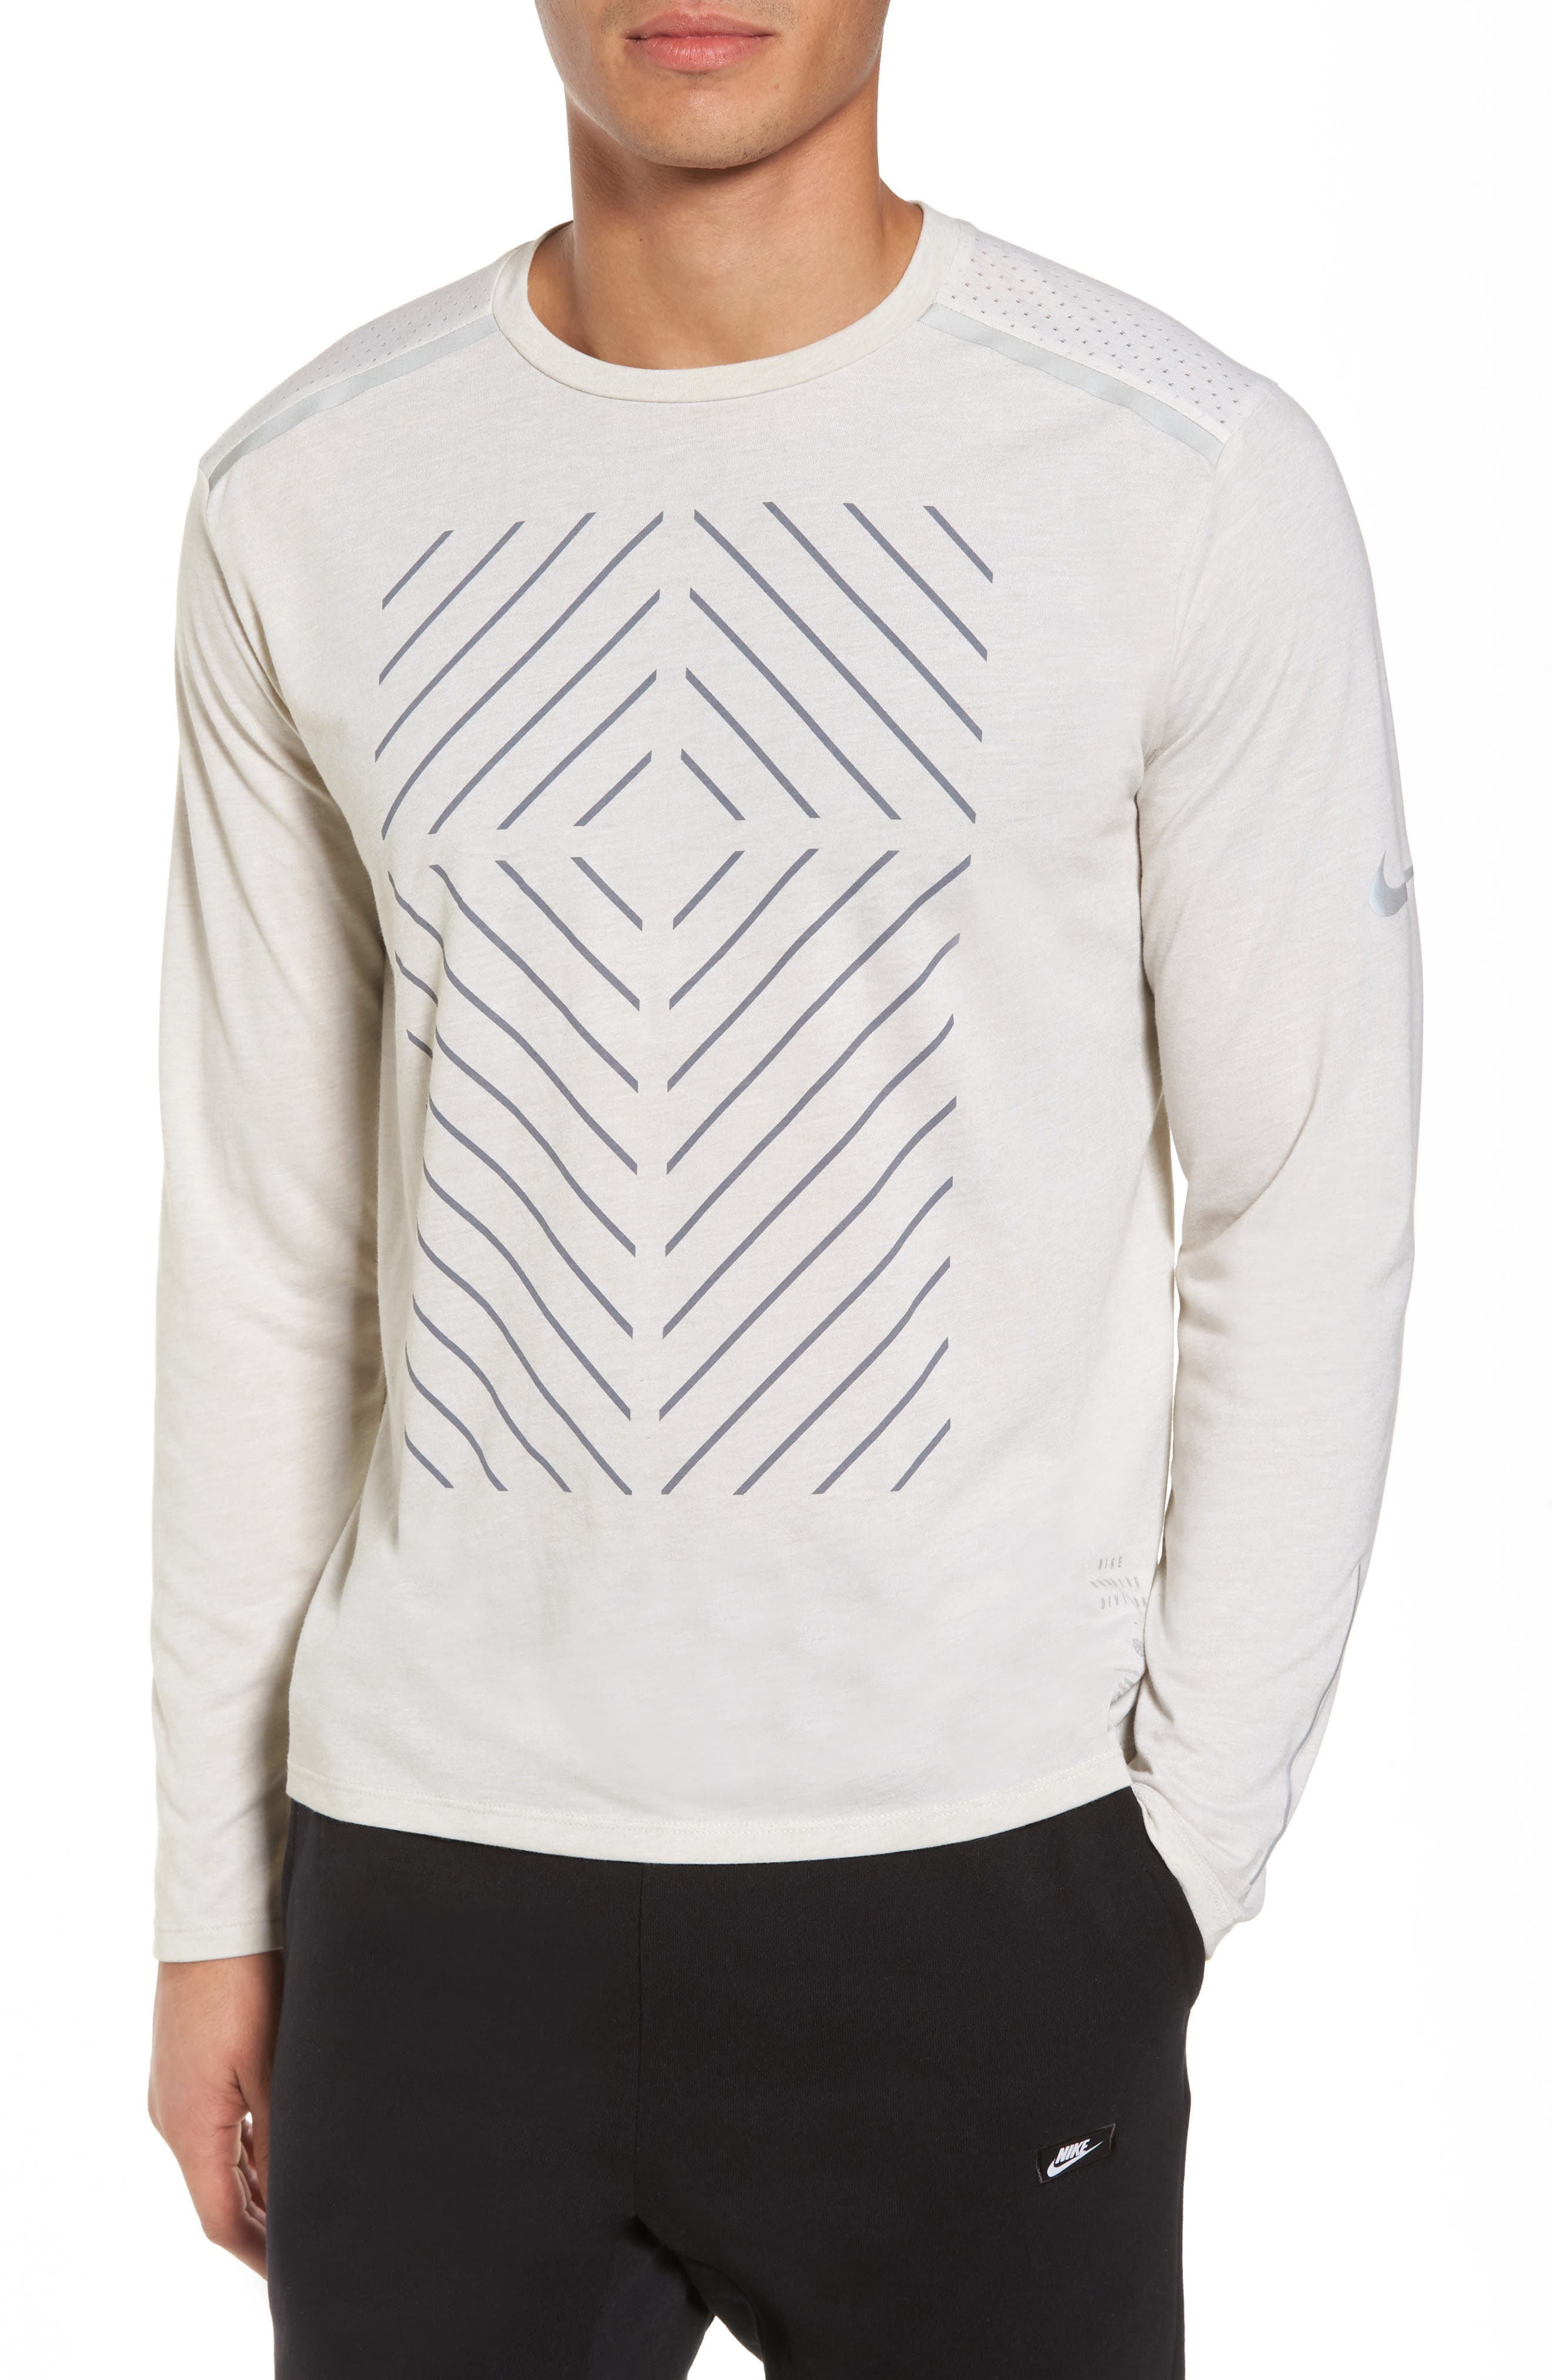 Nike Tailwind Long Sleeve Running T-Shirt